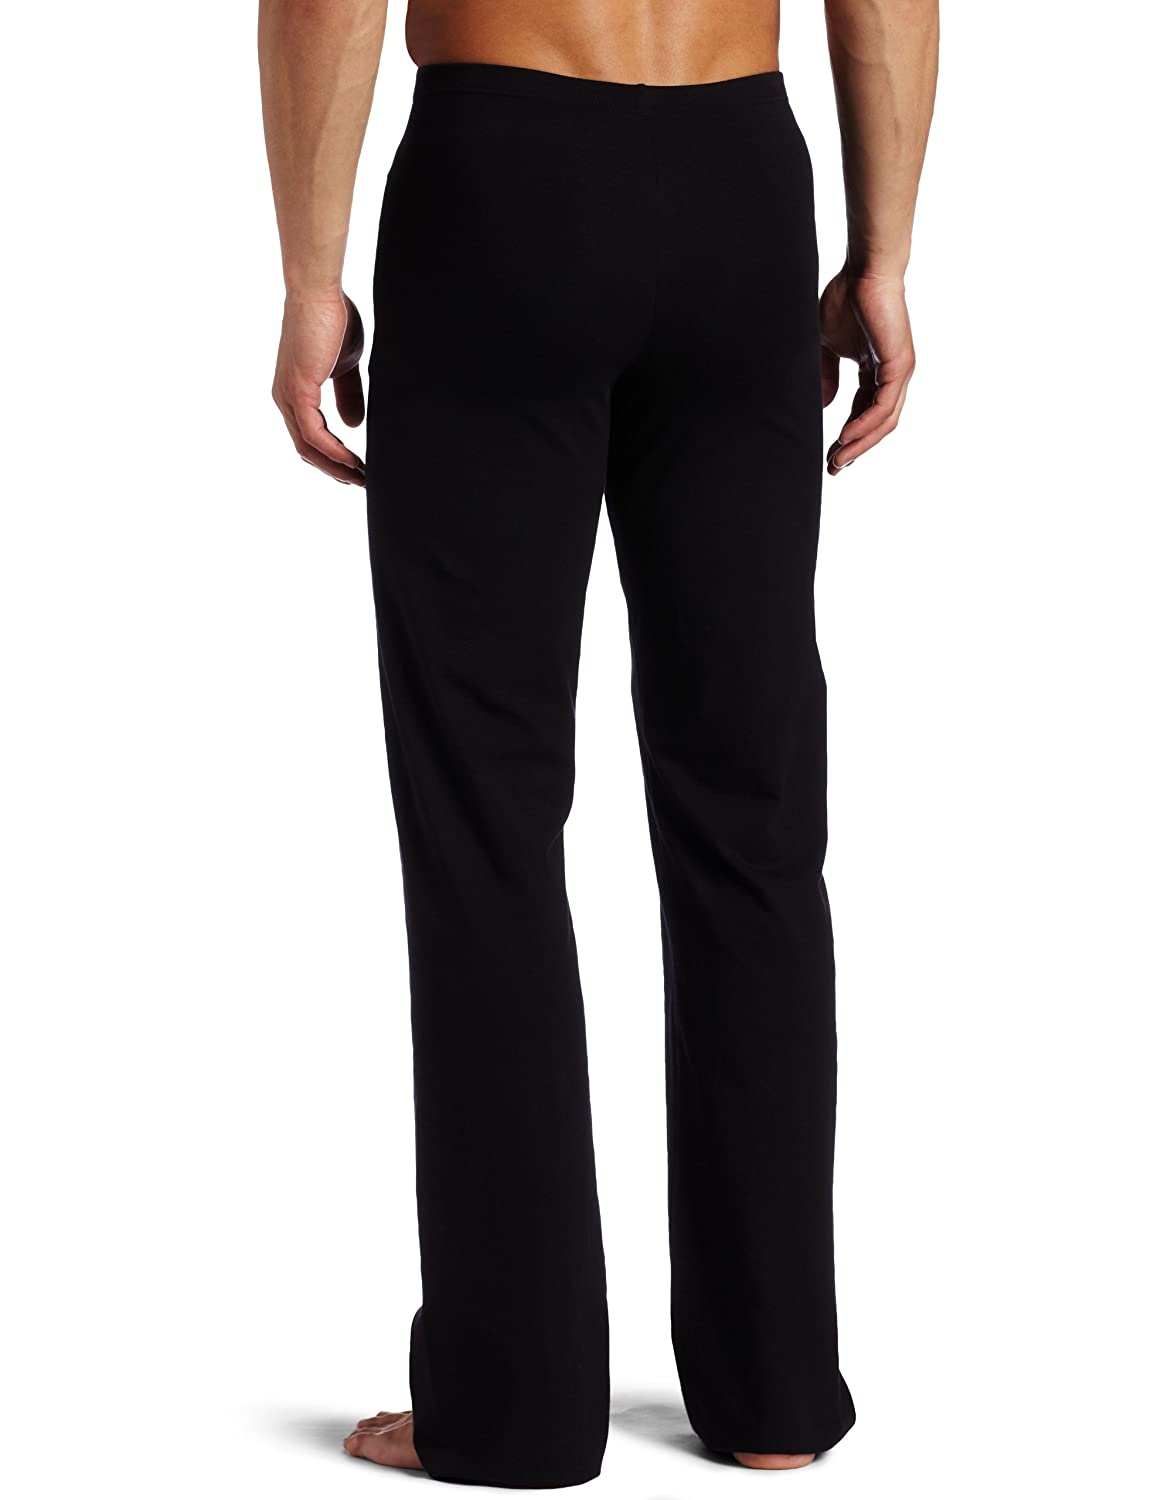 Pantalon de jazz Capezio 5939  Amazon.fr  Sports et Loisirs c3acdccf01f